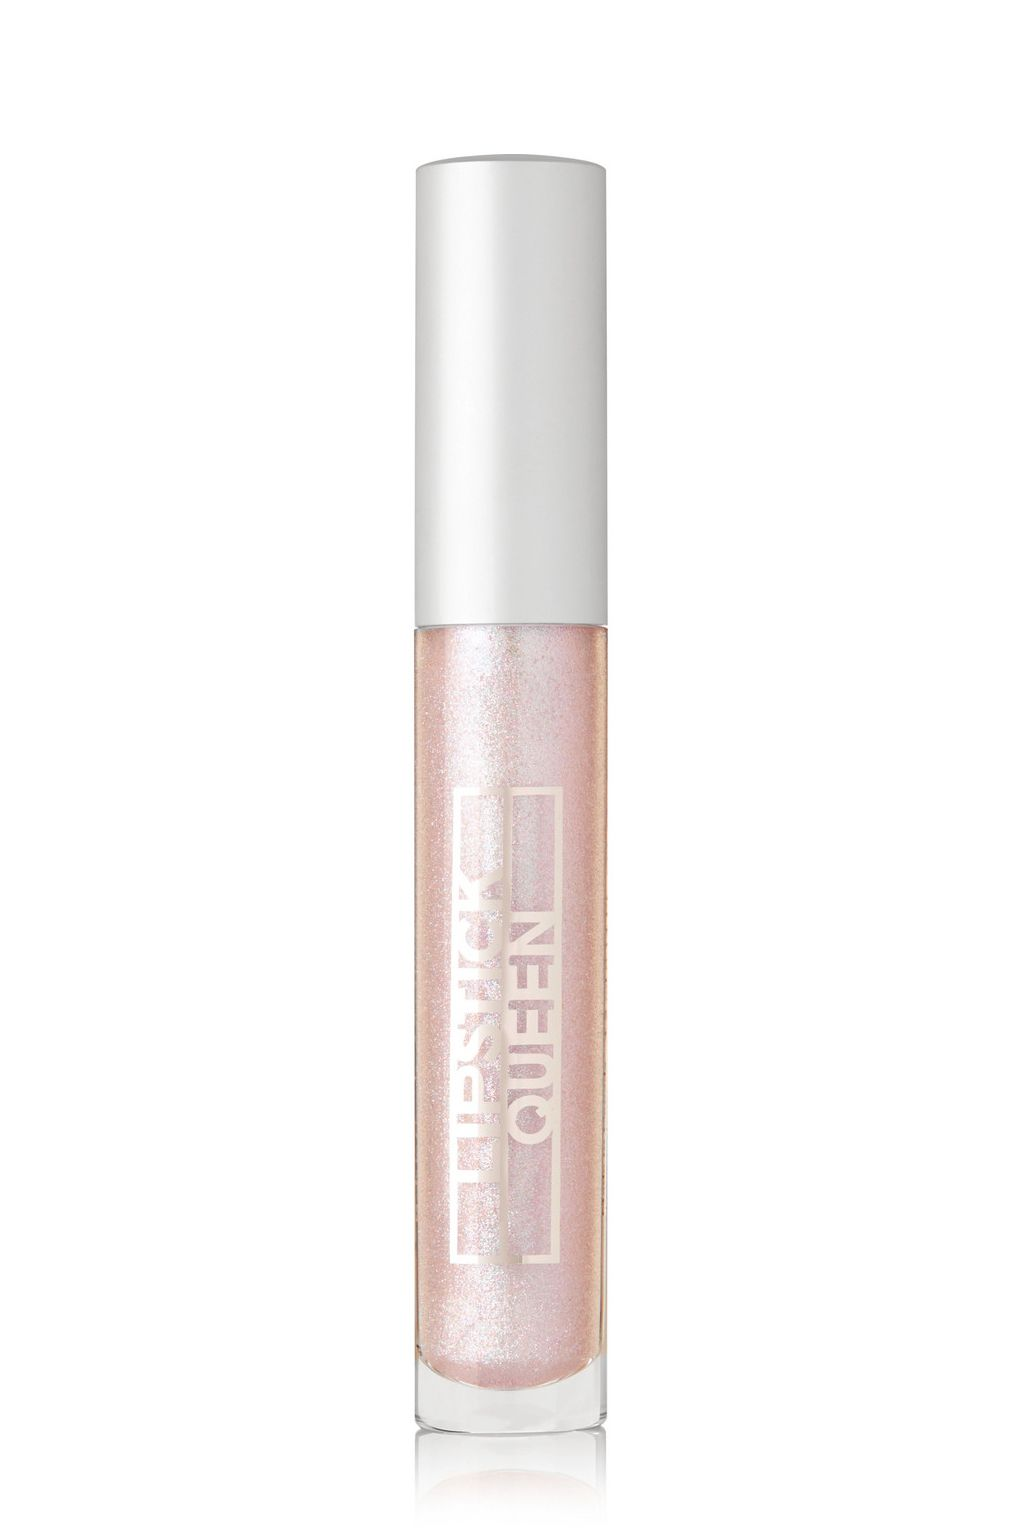 17 Best Lip Gloss Brands - Plumping Lip Gloss in Clear, Red